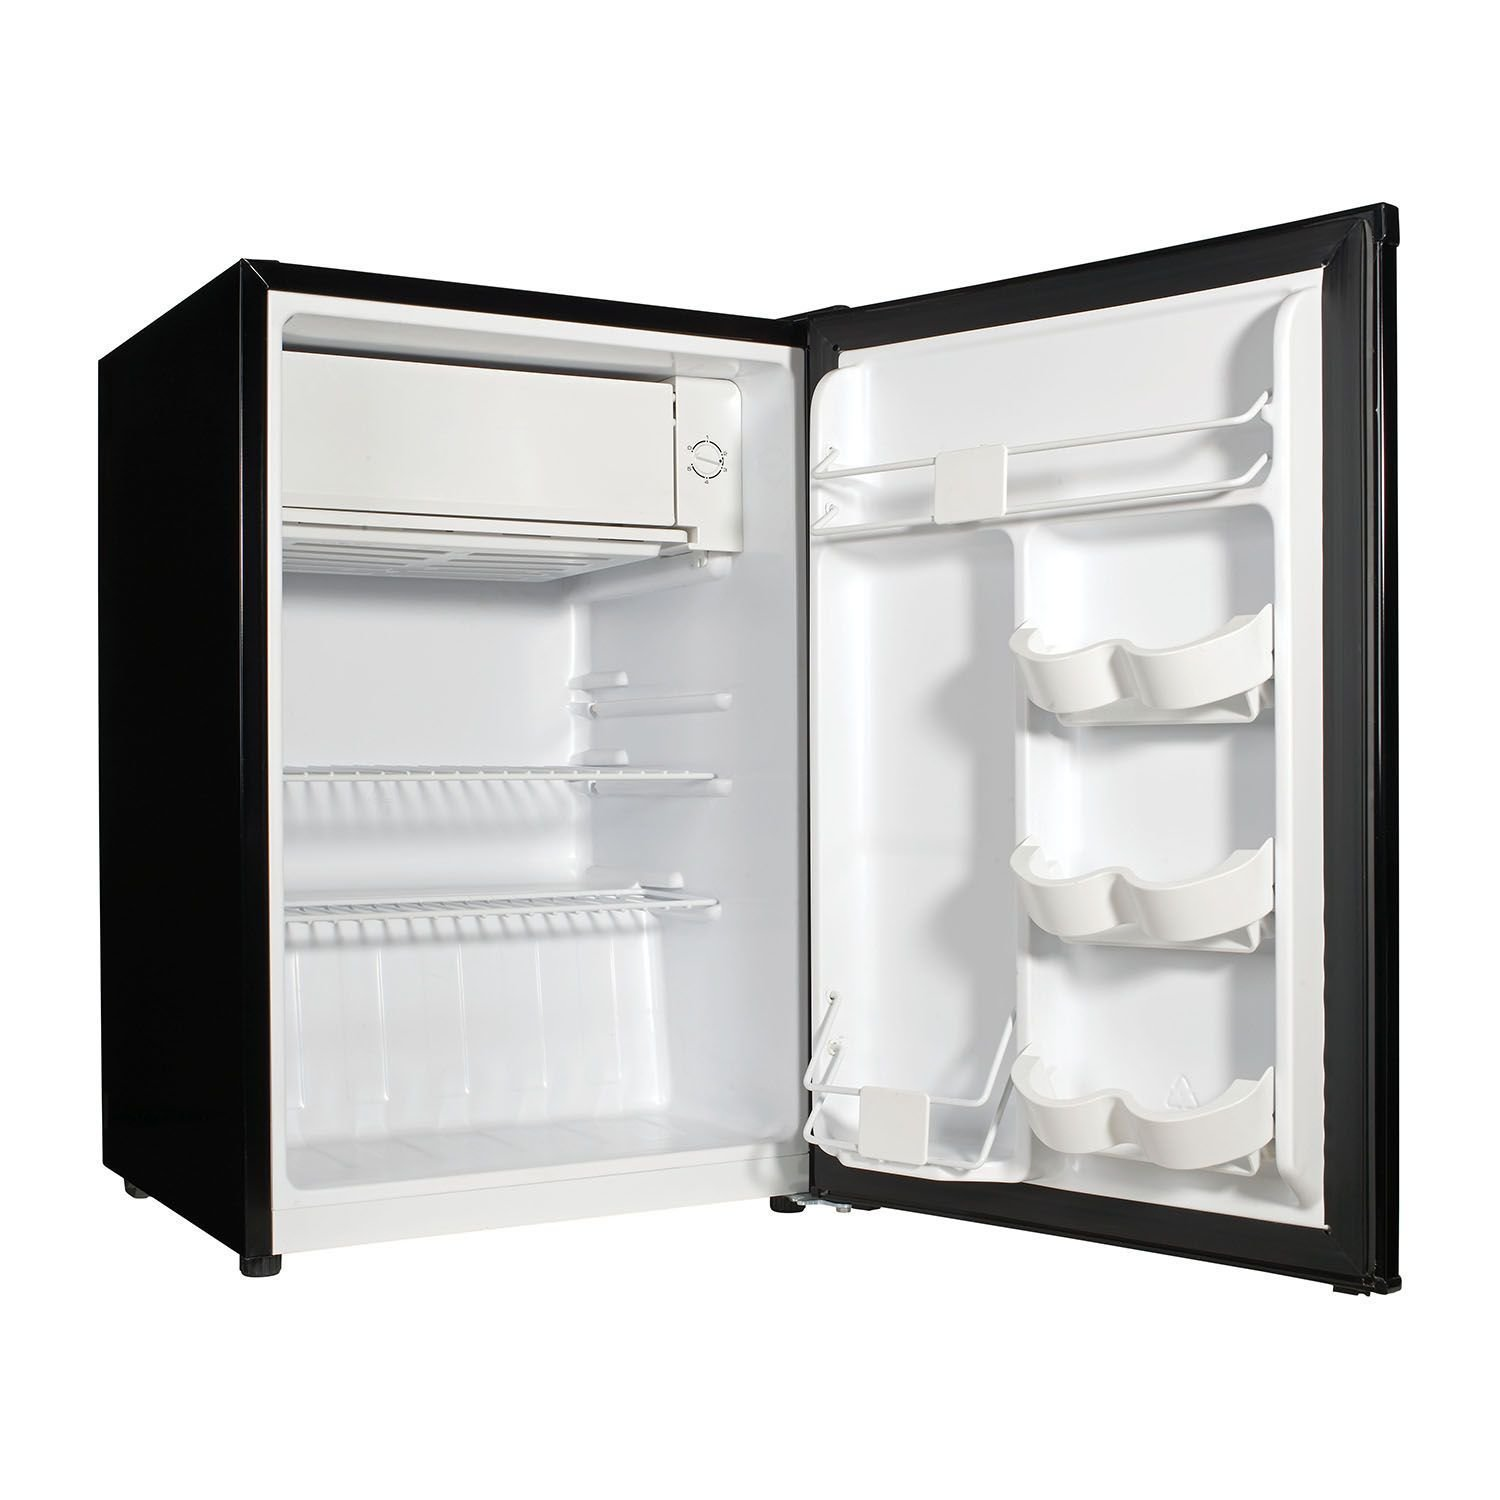 2.7 cubic foot stainless look compact dorm refrigerator by Galanz (Image #1)